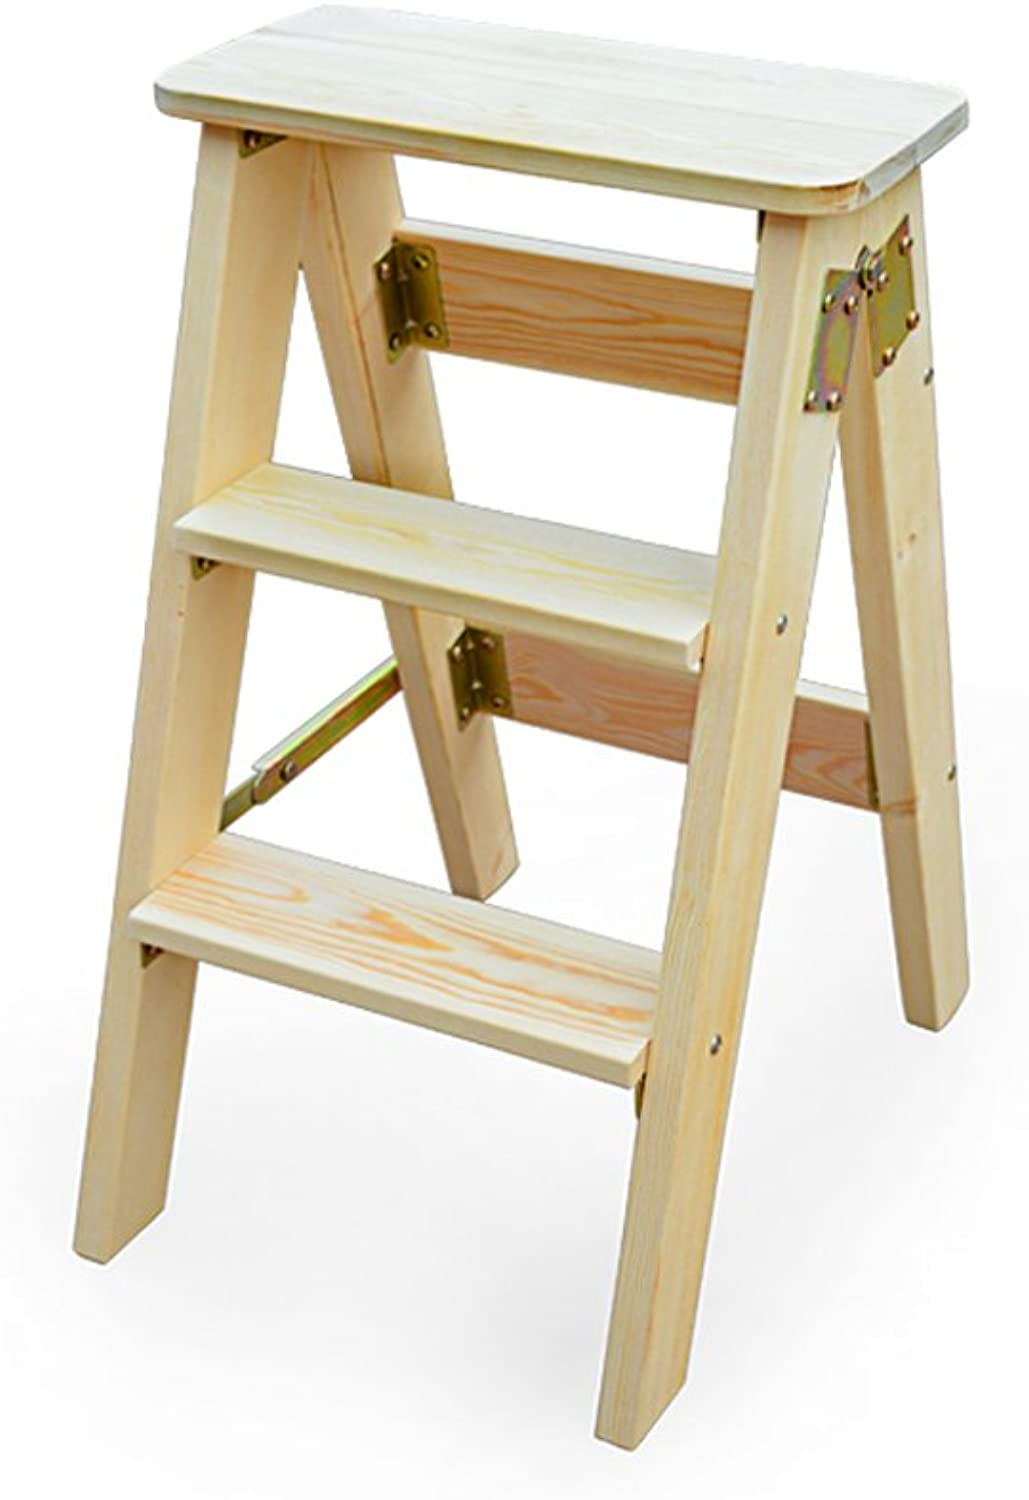 Folding Stool Solid Wood Step Stool Kitchen high Stool Portable Ladder high Stool Multifunctional Modern Simple Stool Furniture (color   B, Size   604020cm)